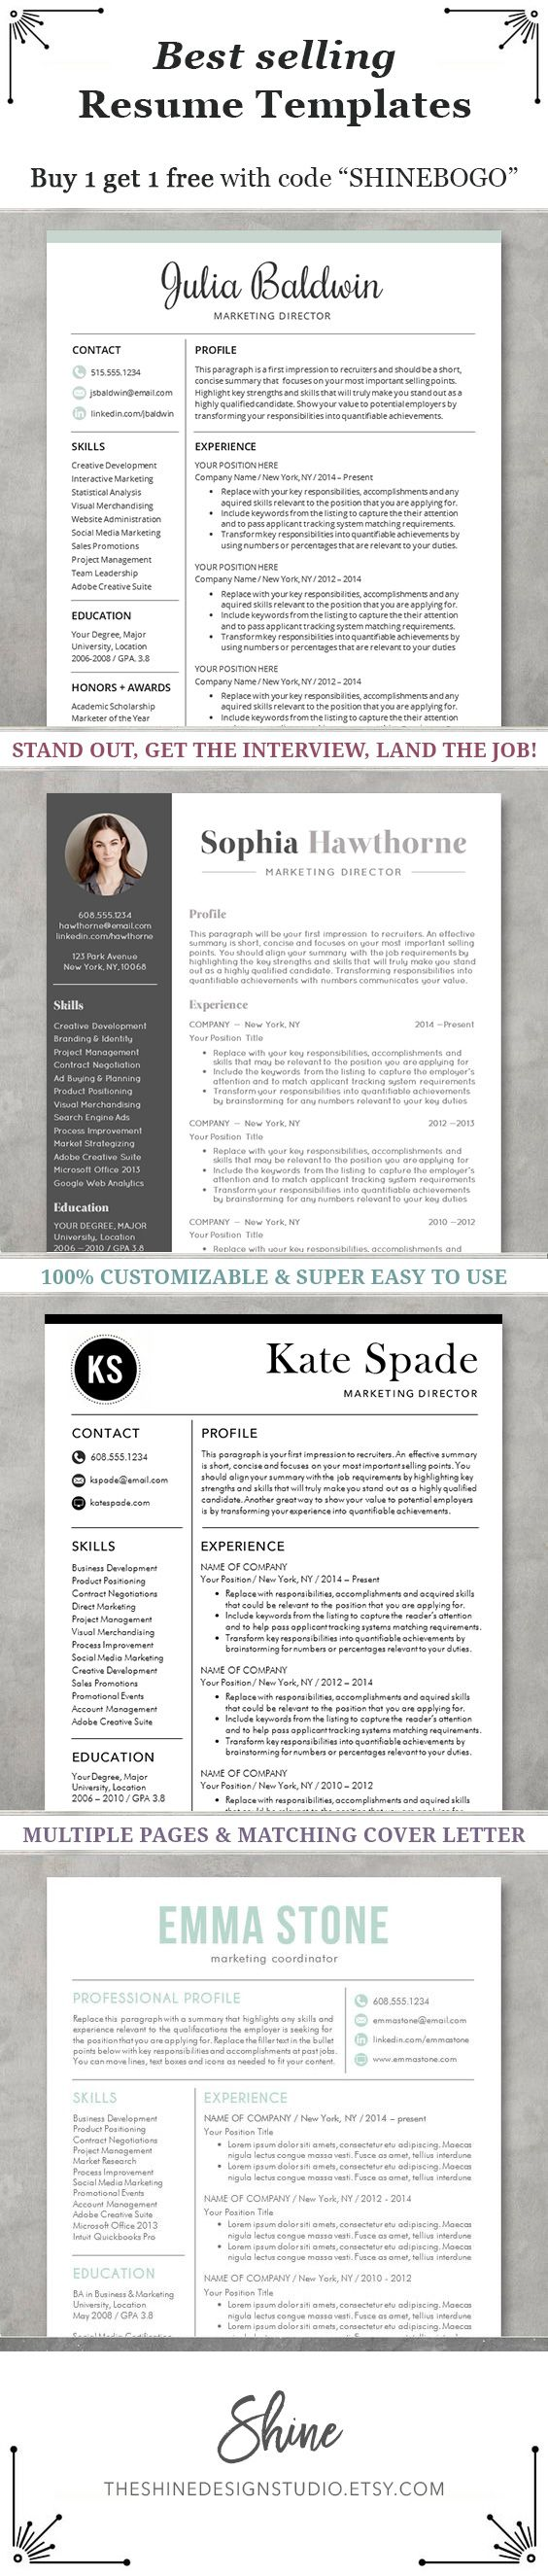 Resume Summary Example Word  Instant Download  Resume Templates  Cv Template  Elegant  Sales Associate Job Duties For Resume with Internship Resumes Excel Instant Download  Resume Templates  Cv Template  Elegant Resume Designs  For Word What Do A Resume Look Like Excel